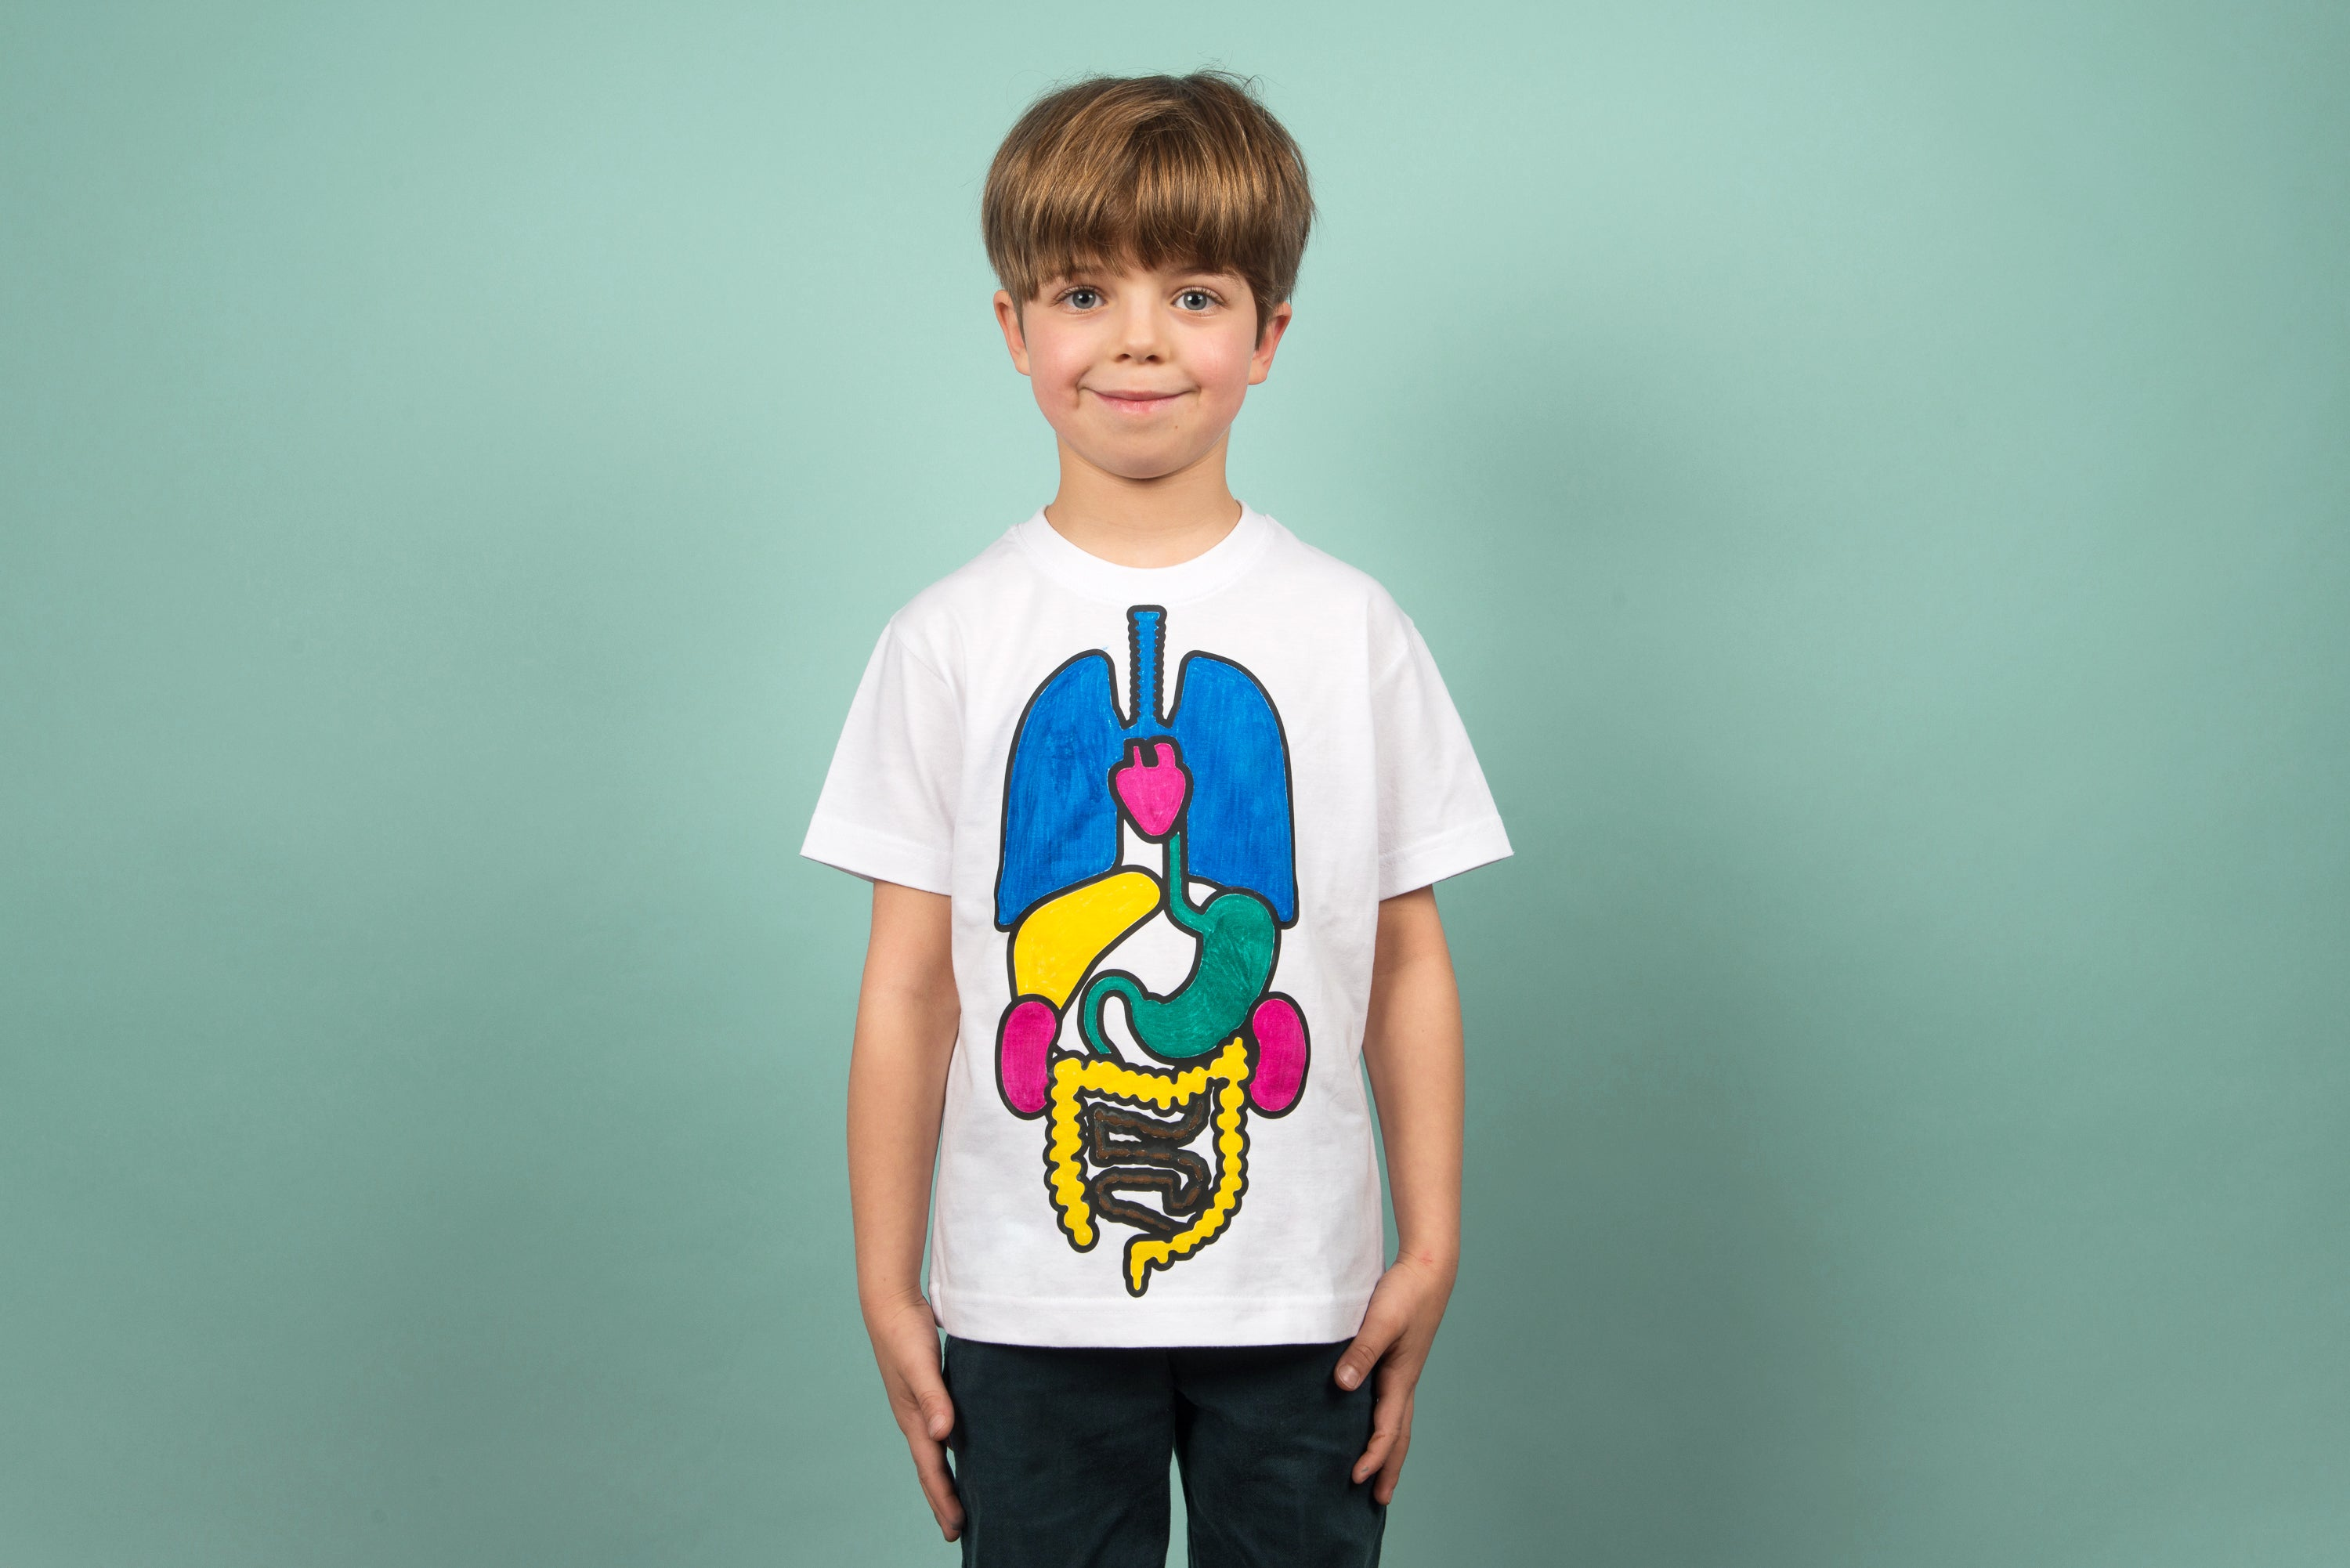 Colour the Body Organs on a Teeshirt - 6 Years